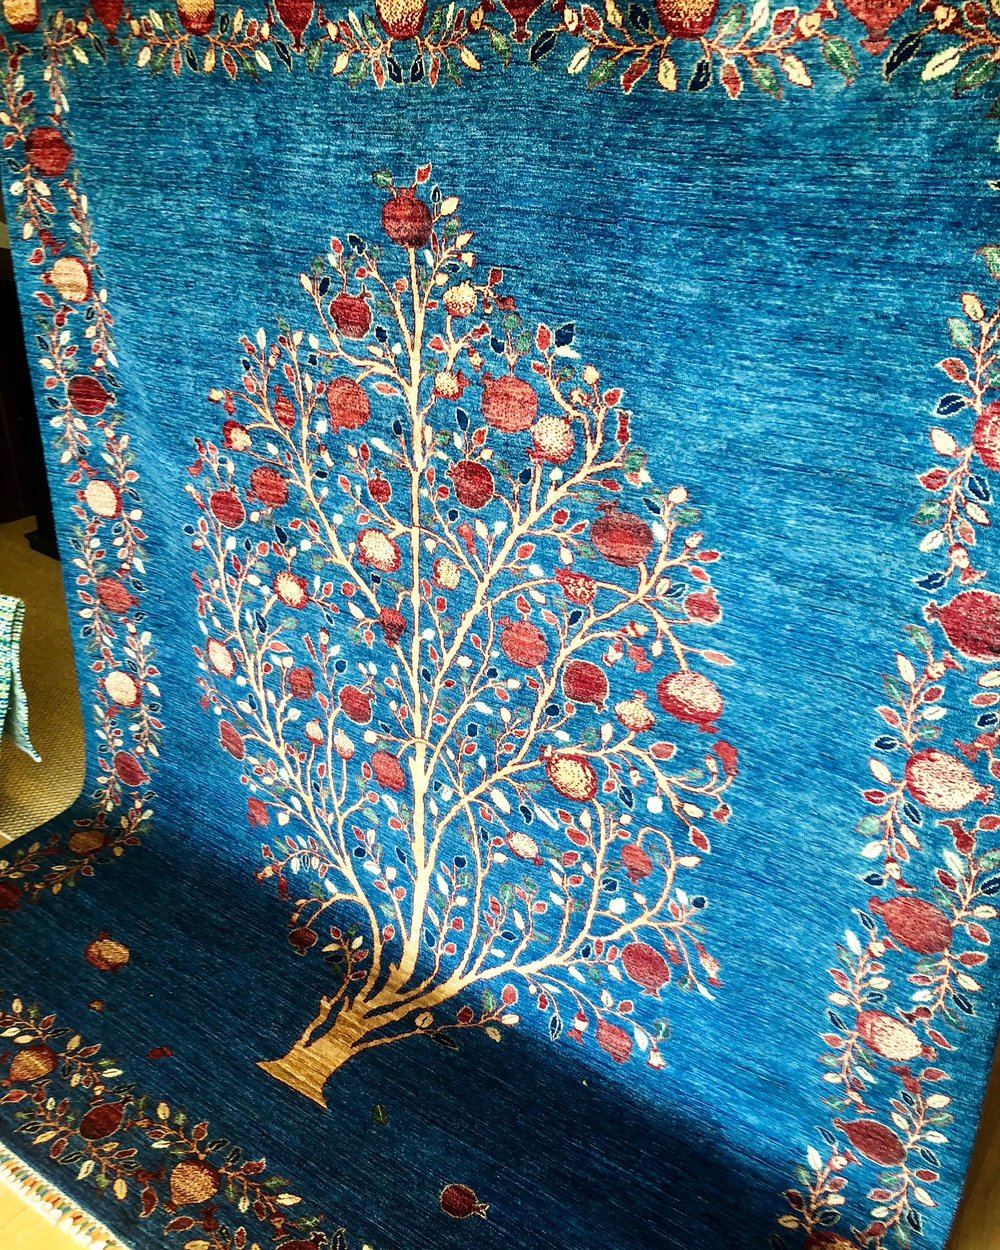 Pomegranate tree rug, symbolizing fertility, abundance, and good health.